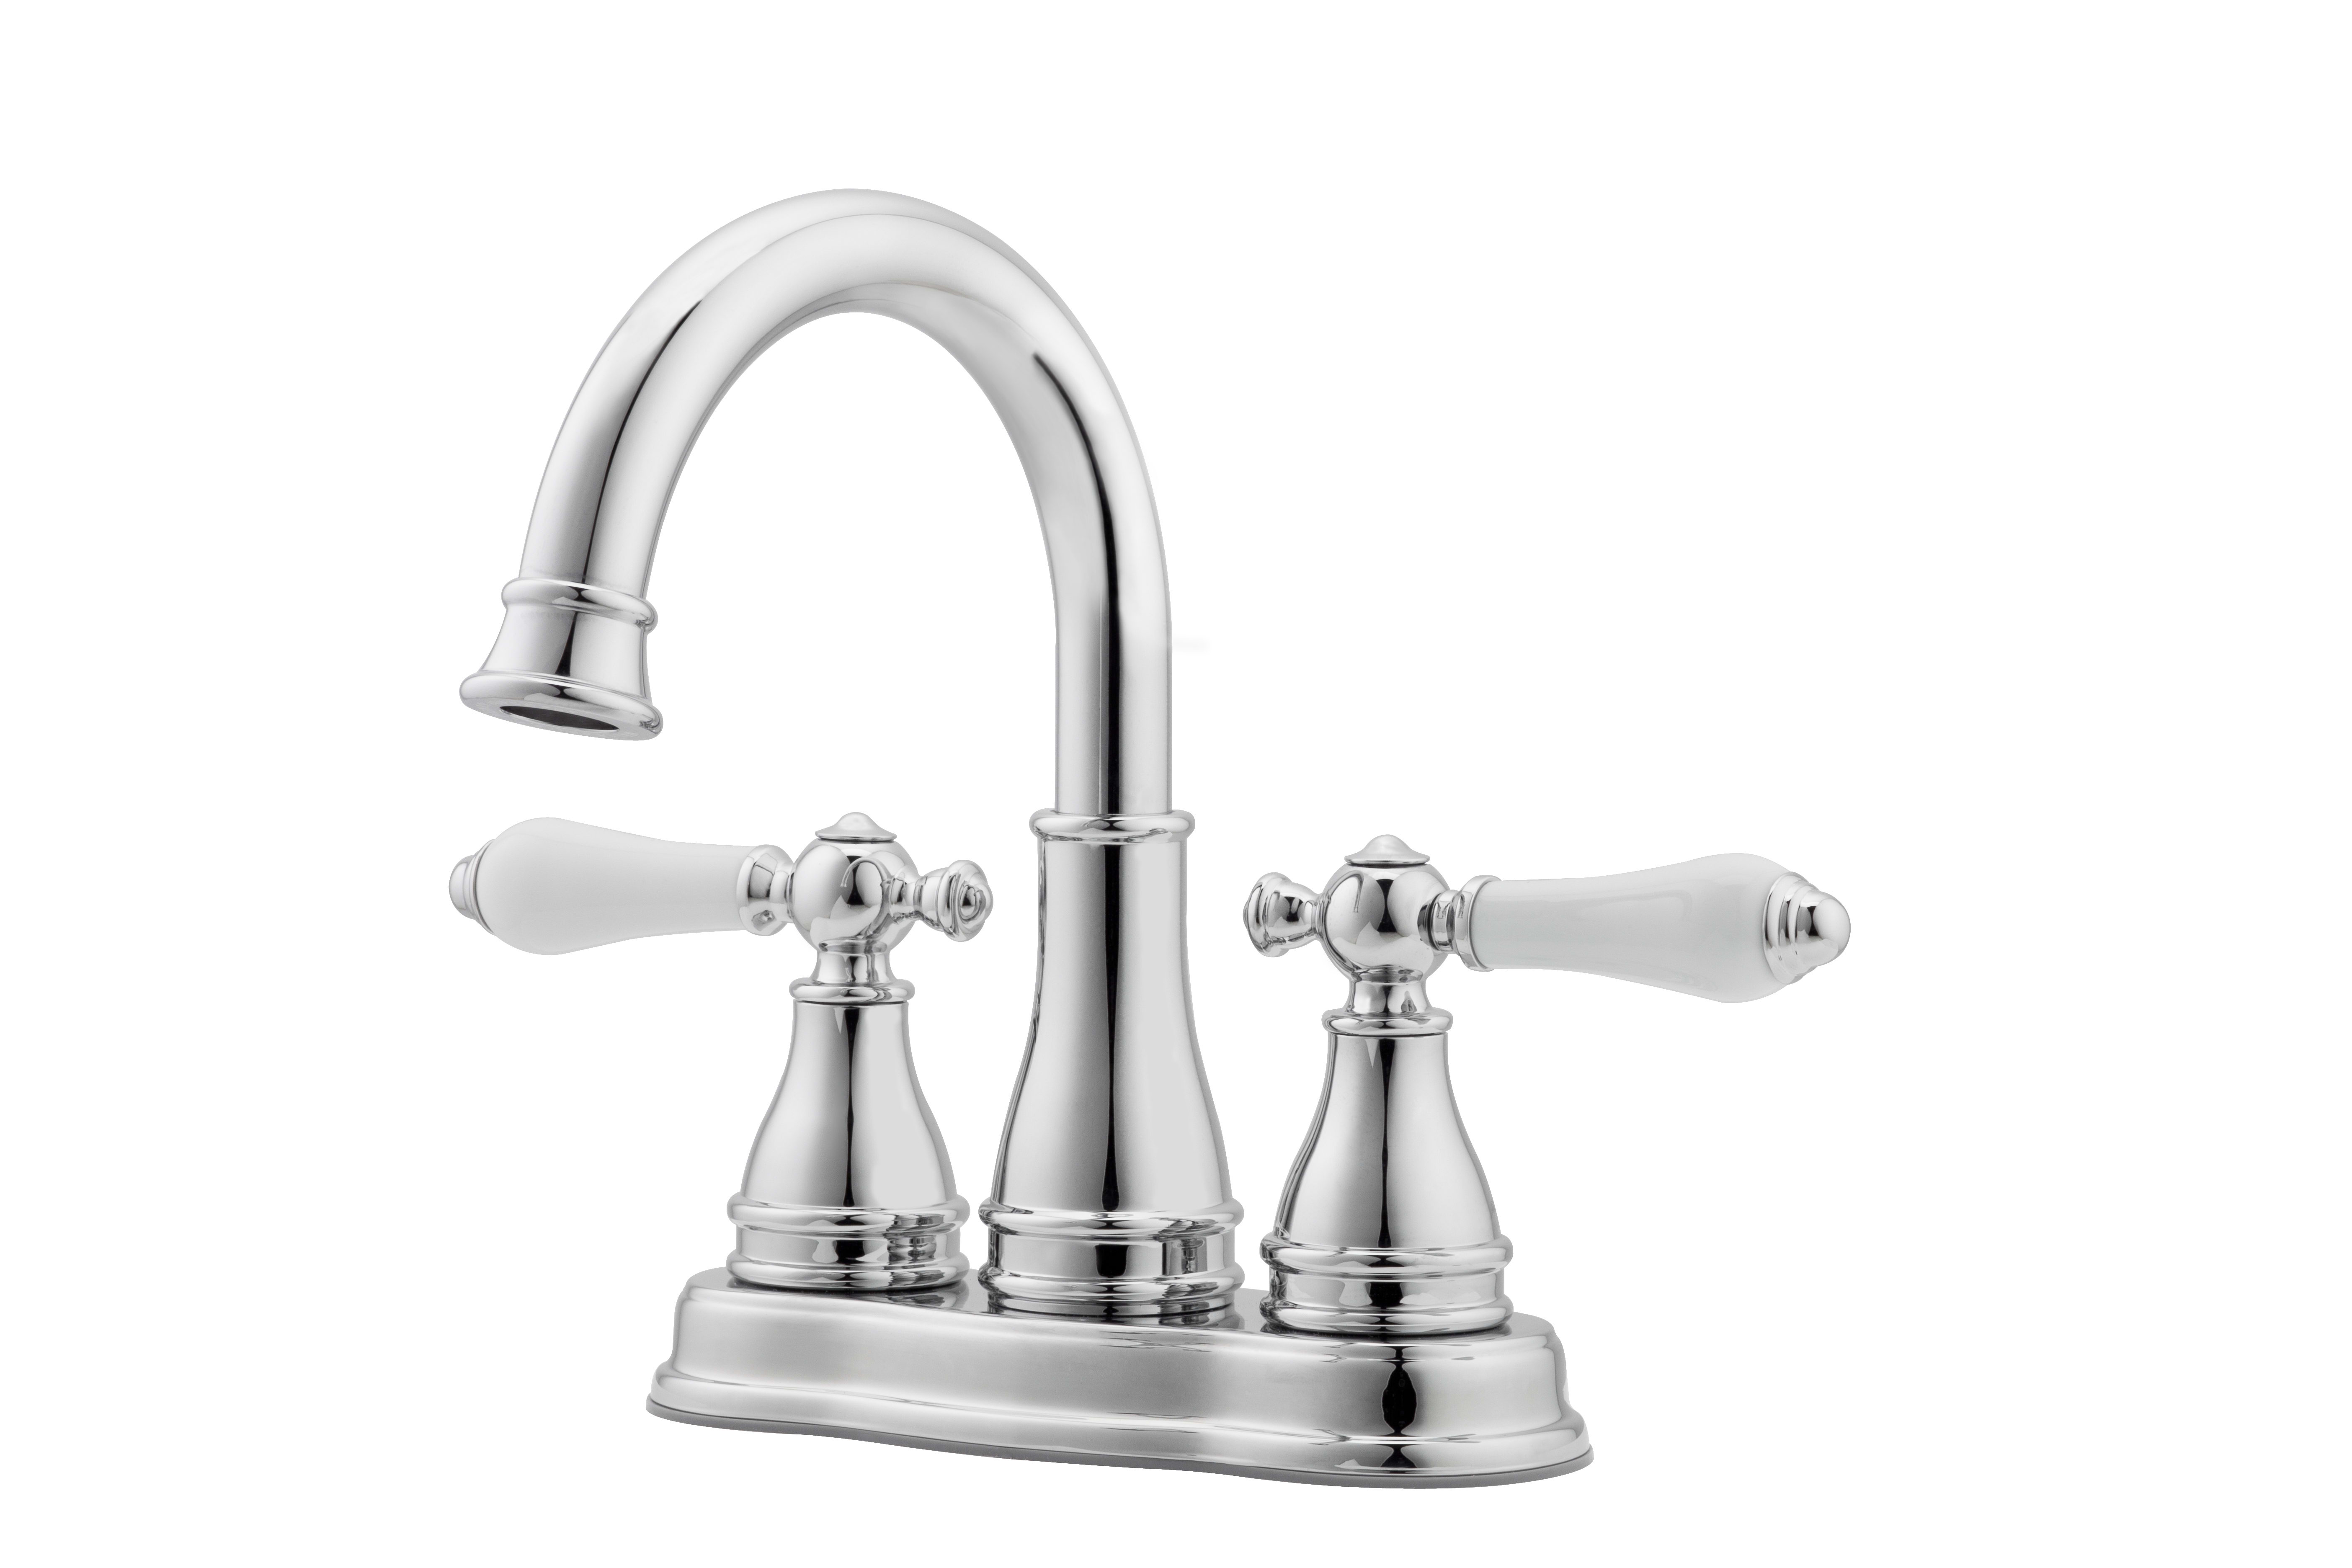 Pfister Lf Wl2 45pc Polished Chrome Sonterra 12 Gpm Centerset Price Parts Diagram Faucets Reviews Bathroom Faucet Includes Pop Up Drain Assembly